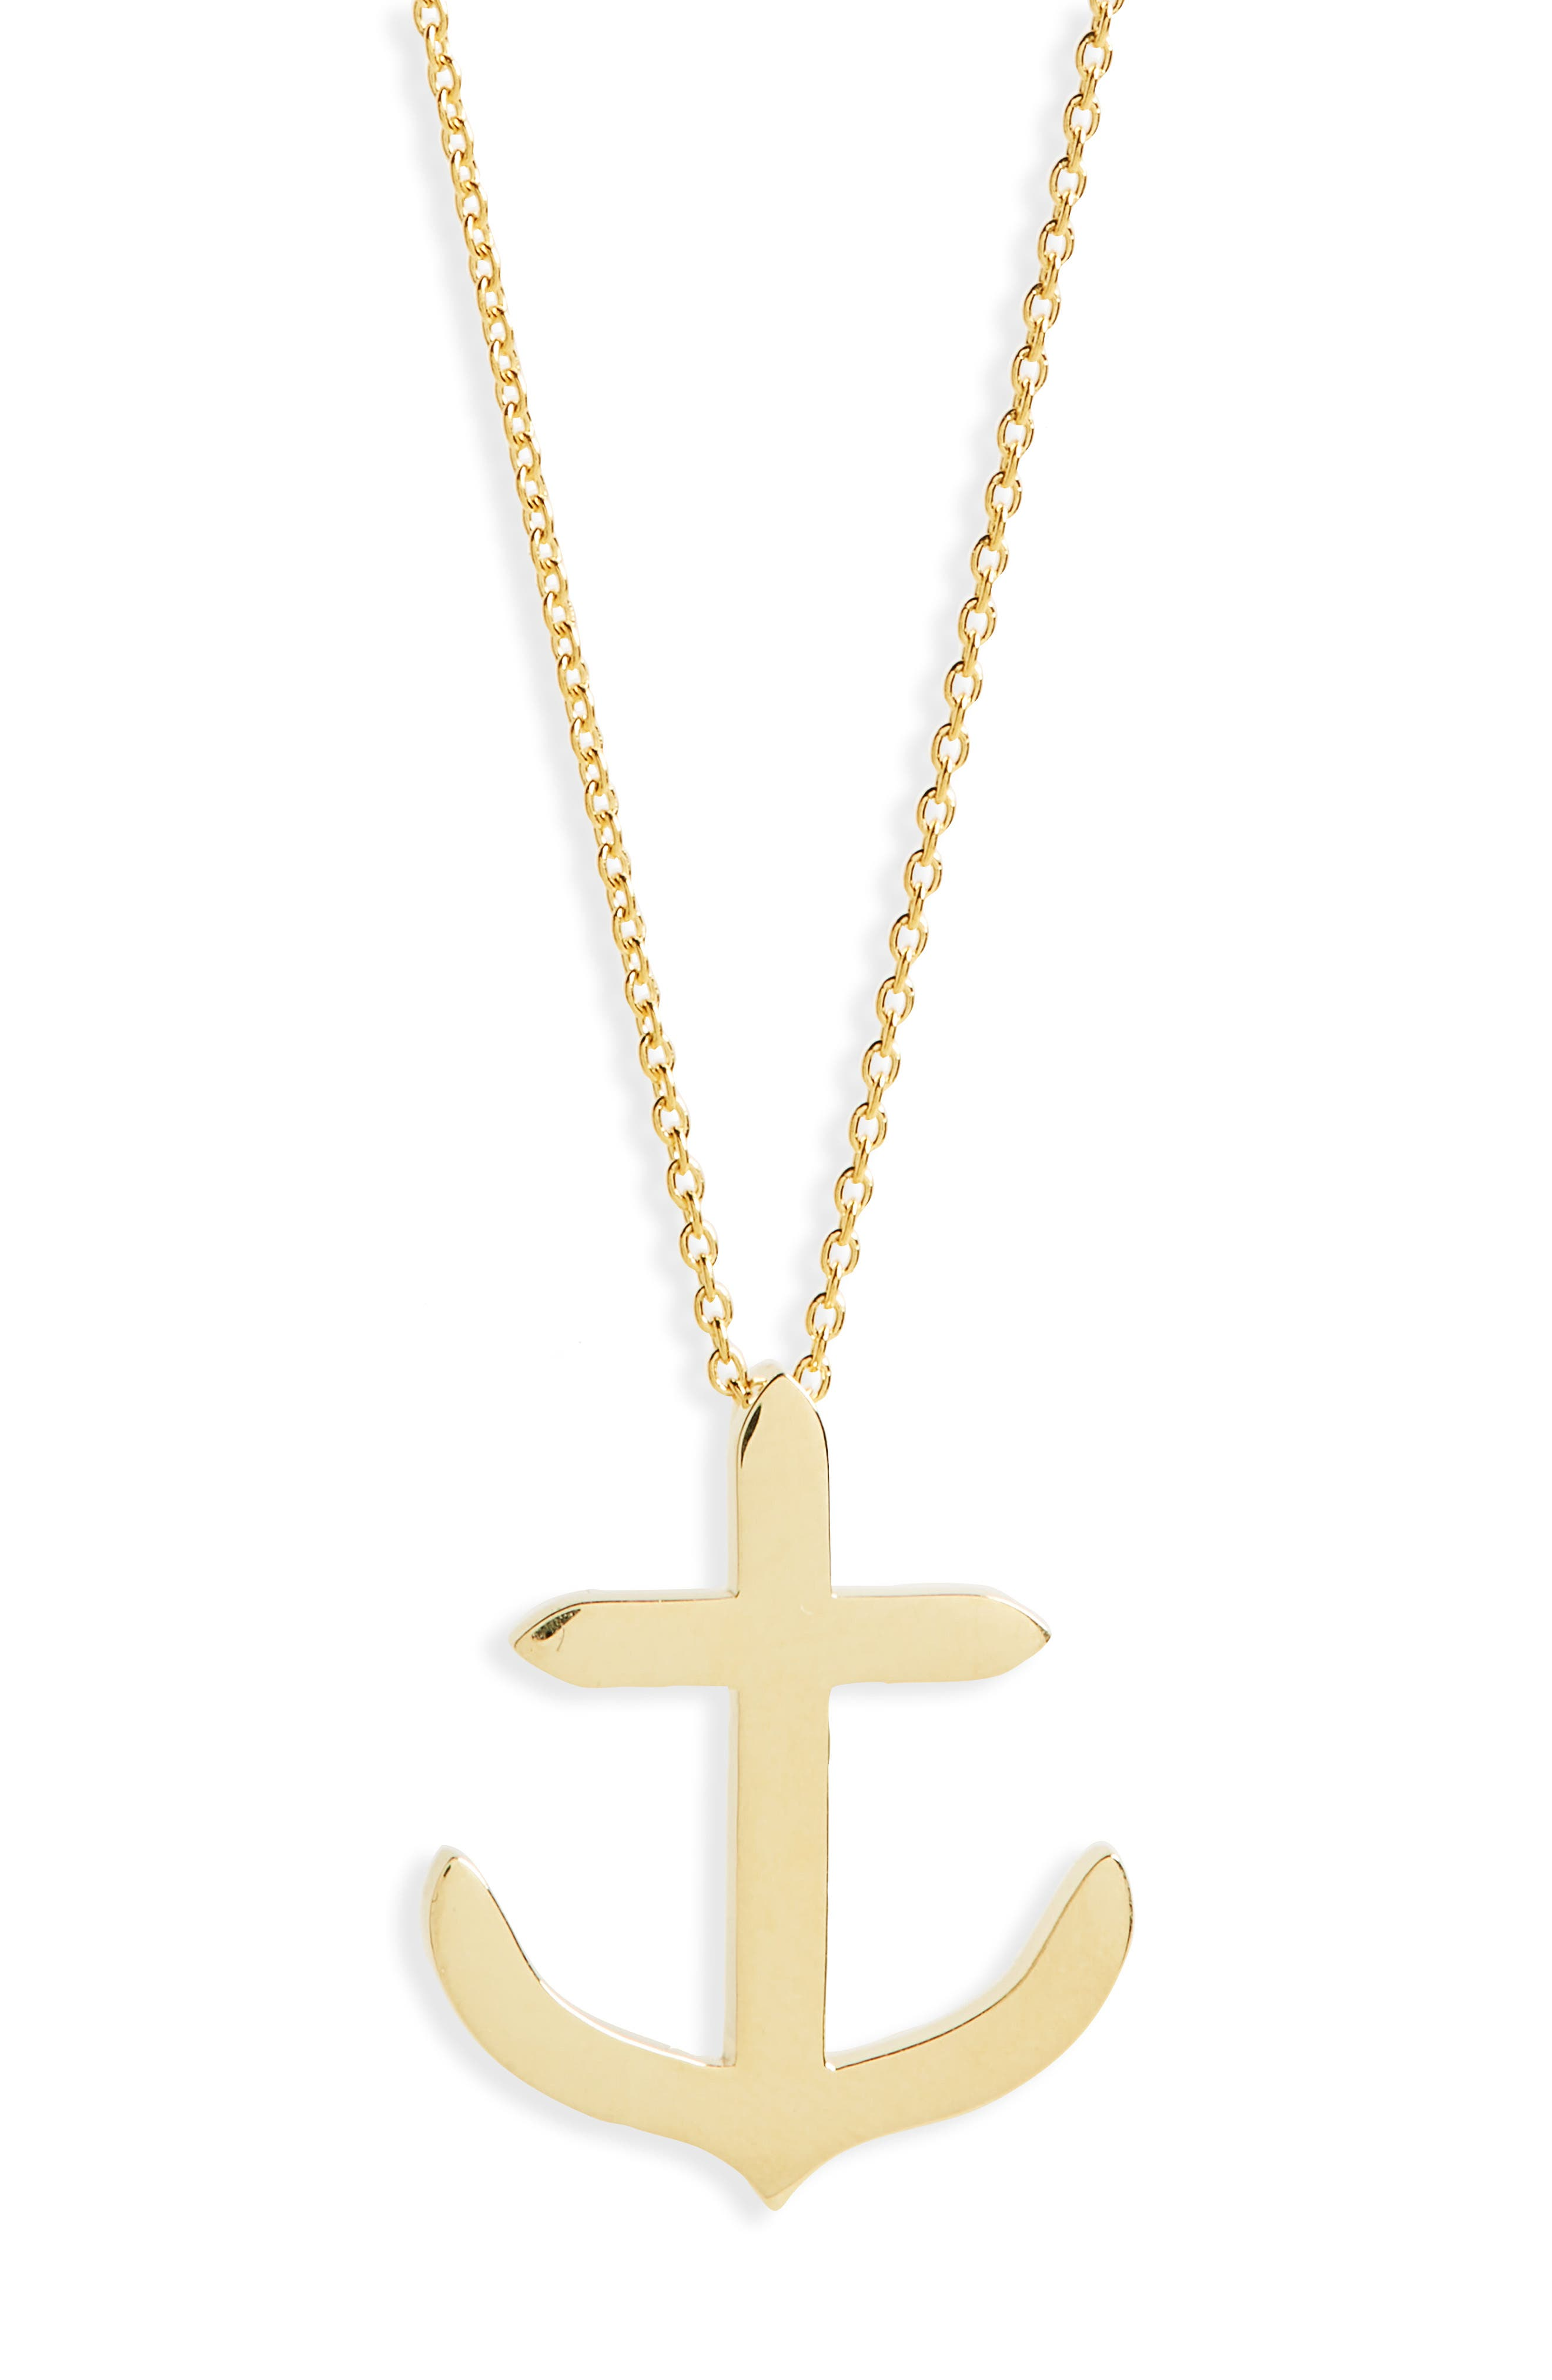 Anchor Necklace,                         Main,                         color, Yellow Gold